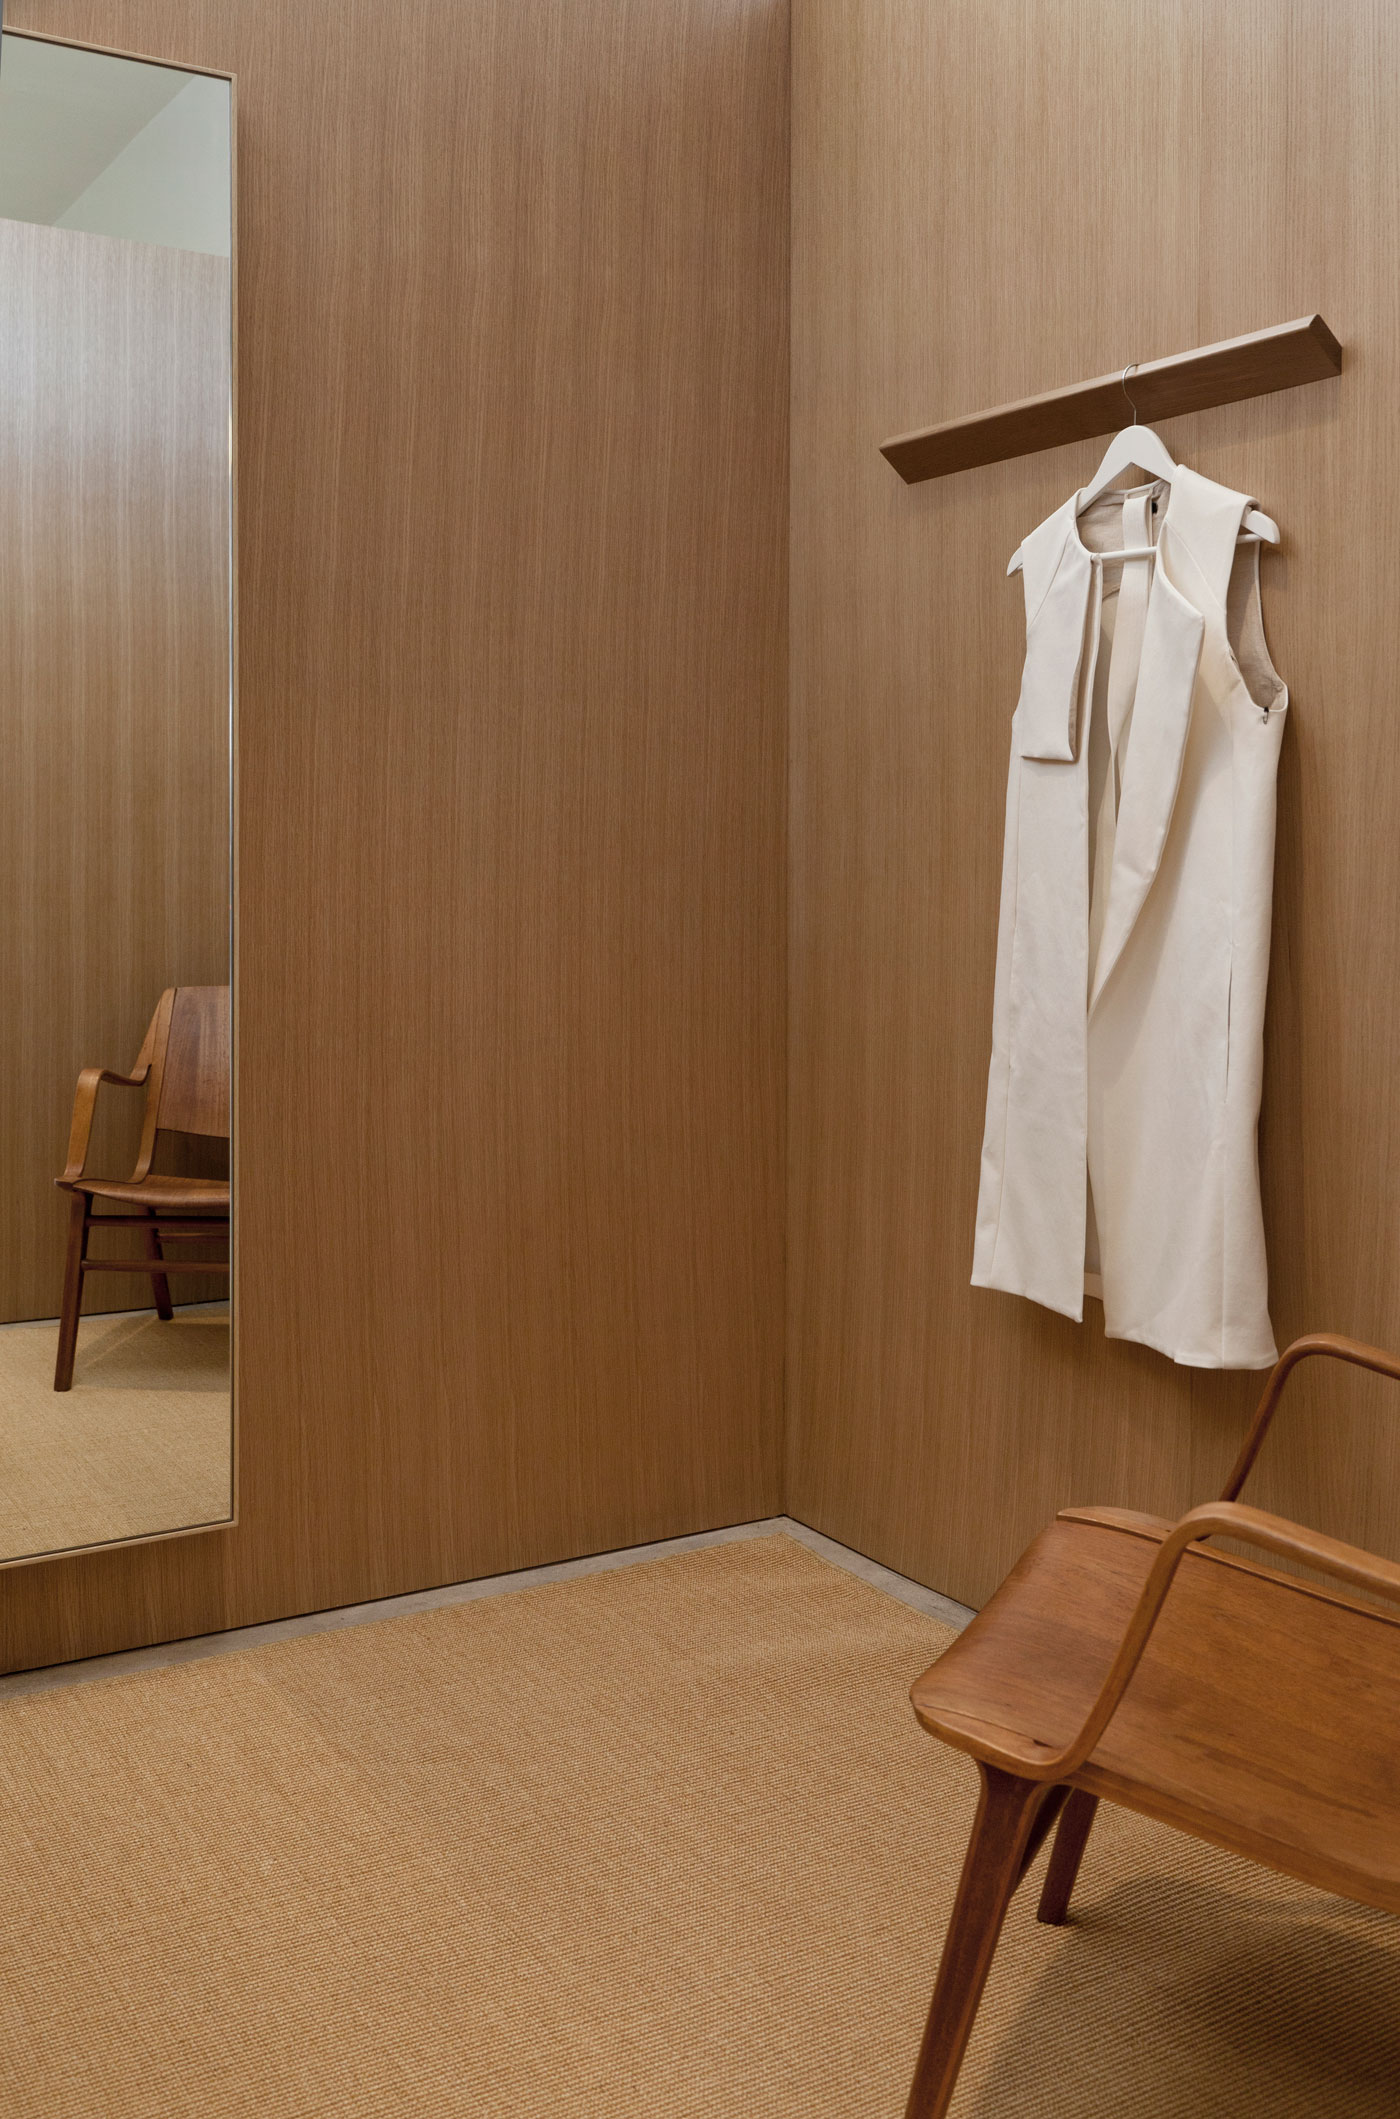 The oak clad fitting rooms feature custom designed hang rails sculpted from solid white oak. The subtle angle allows the rail to catch the clothing and light from above.